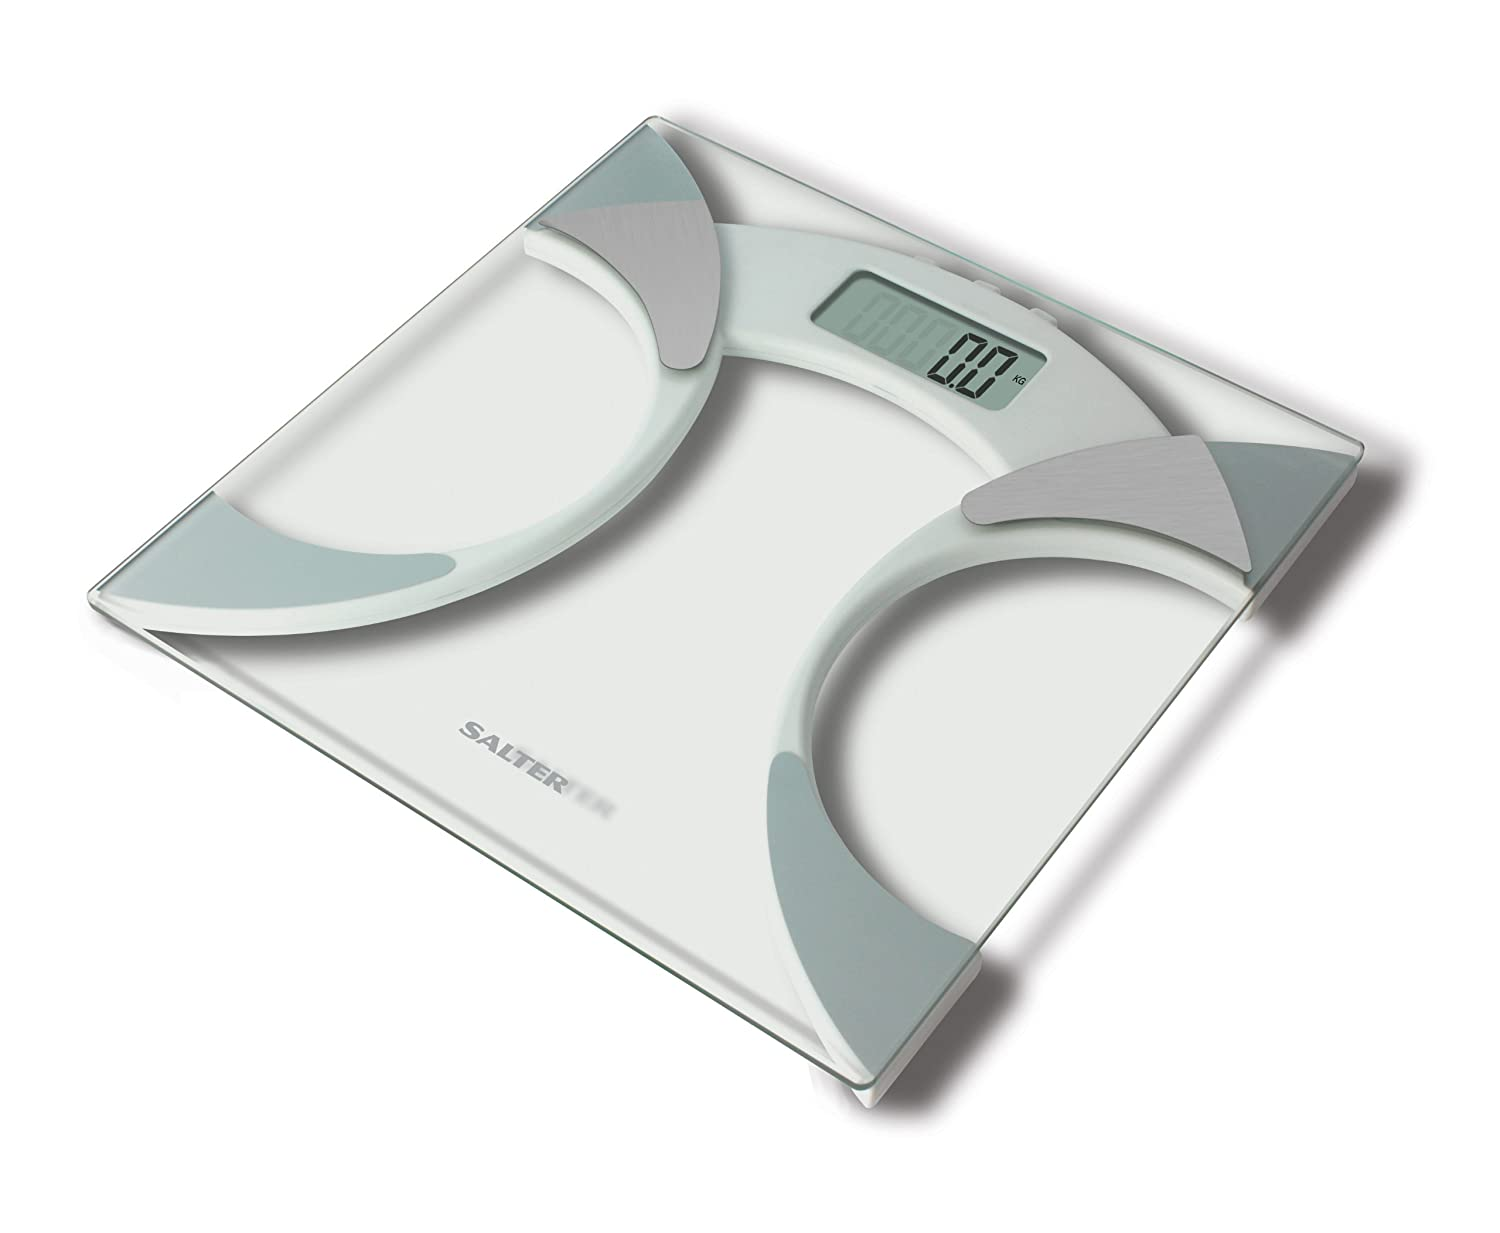 Ultra Slim Analyser Bathroom Scales